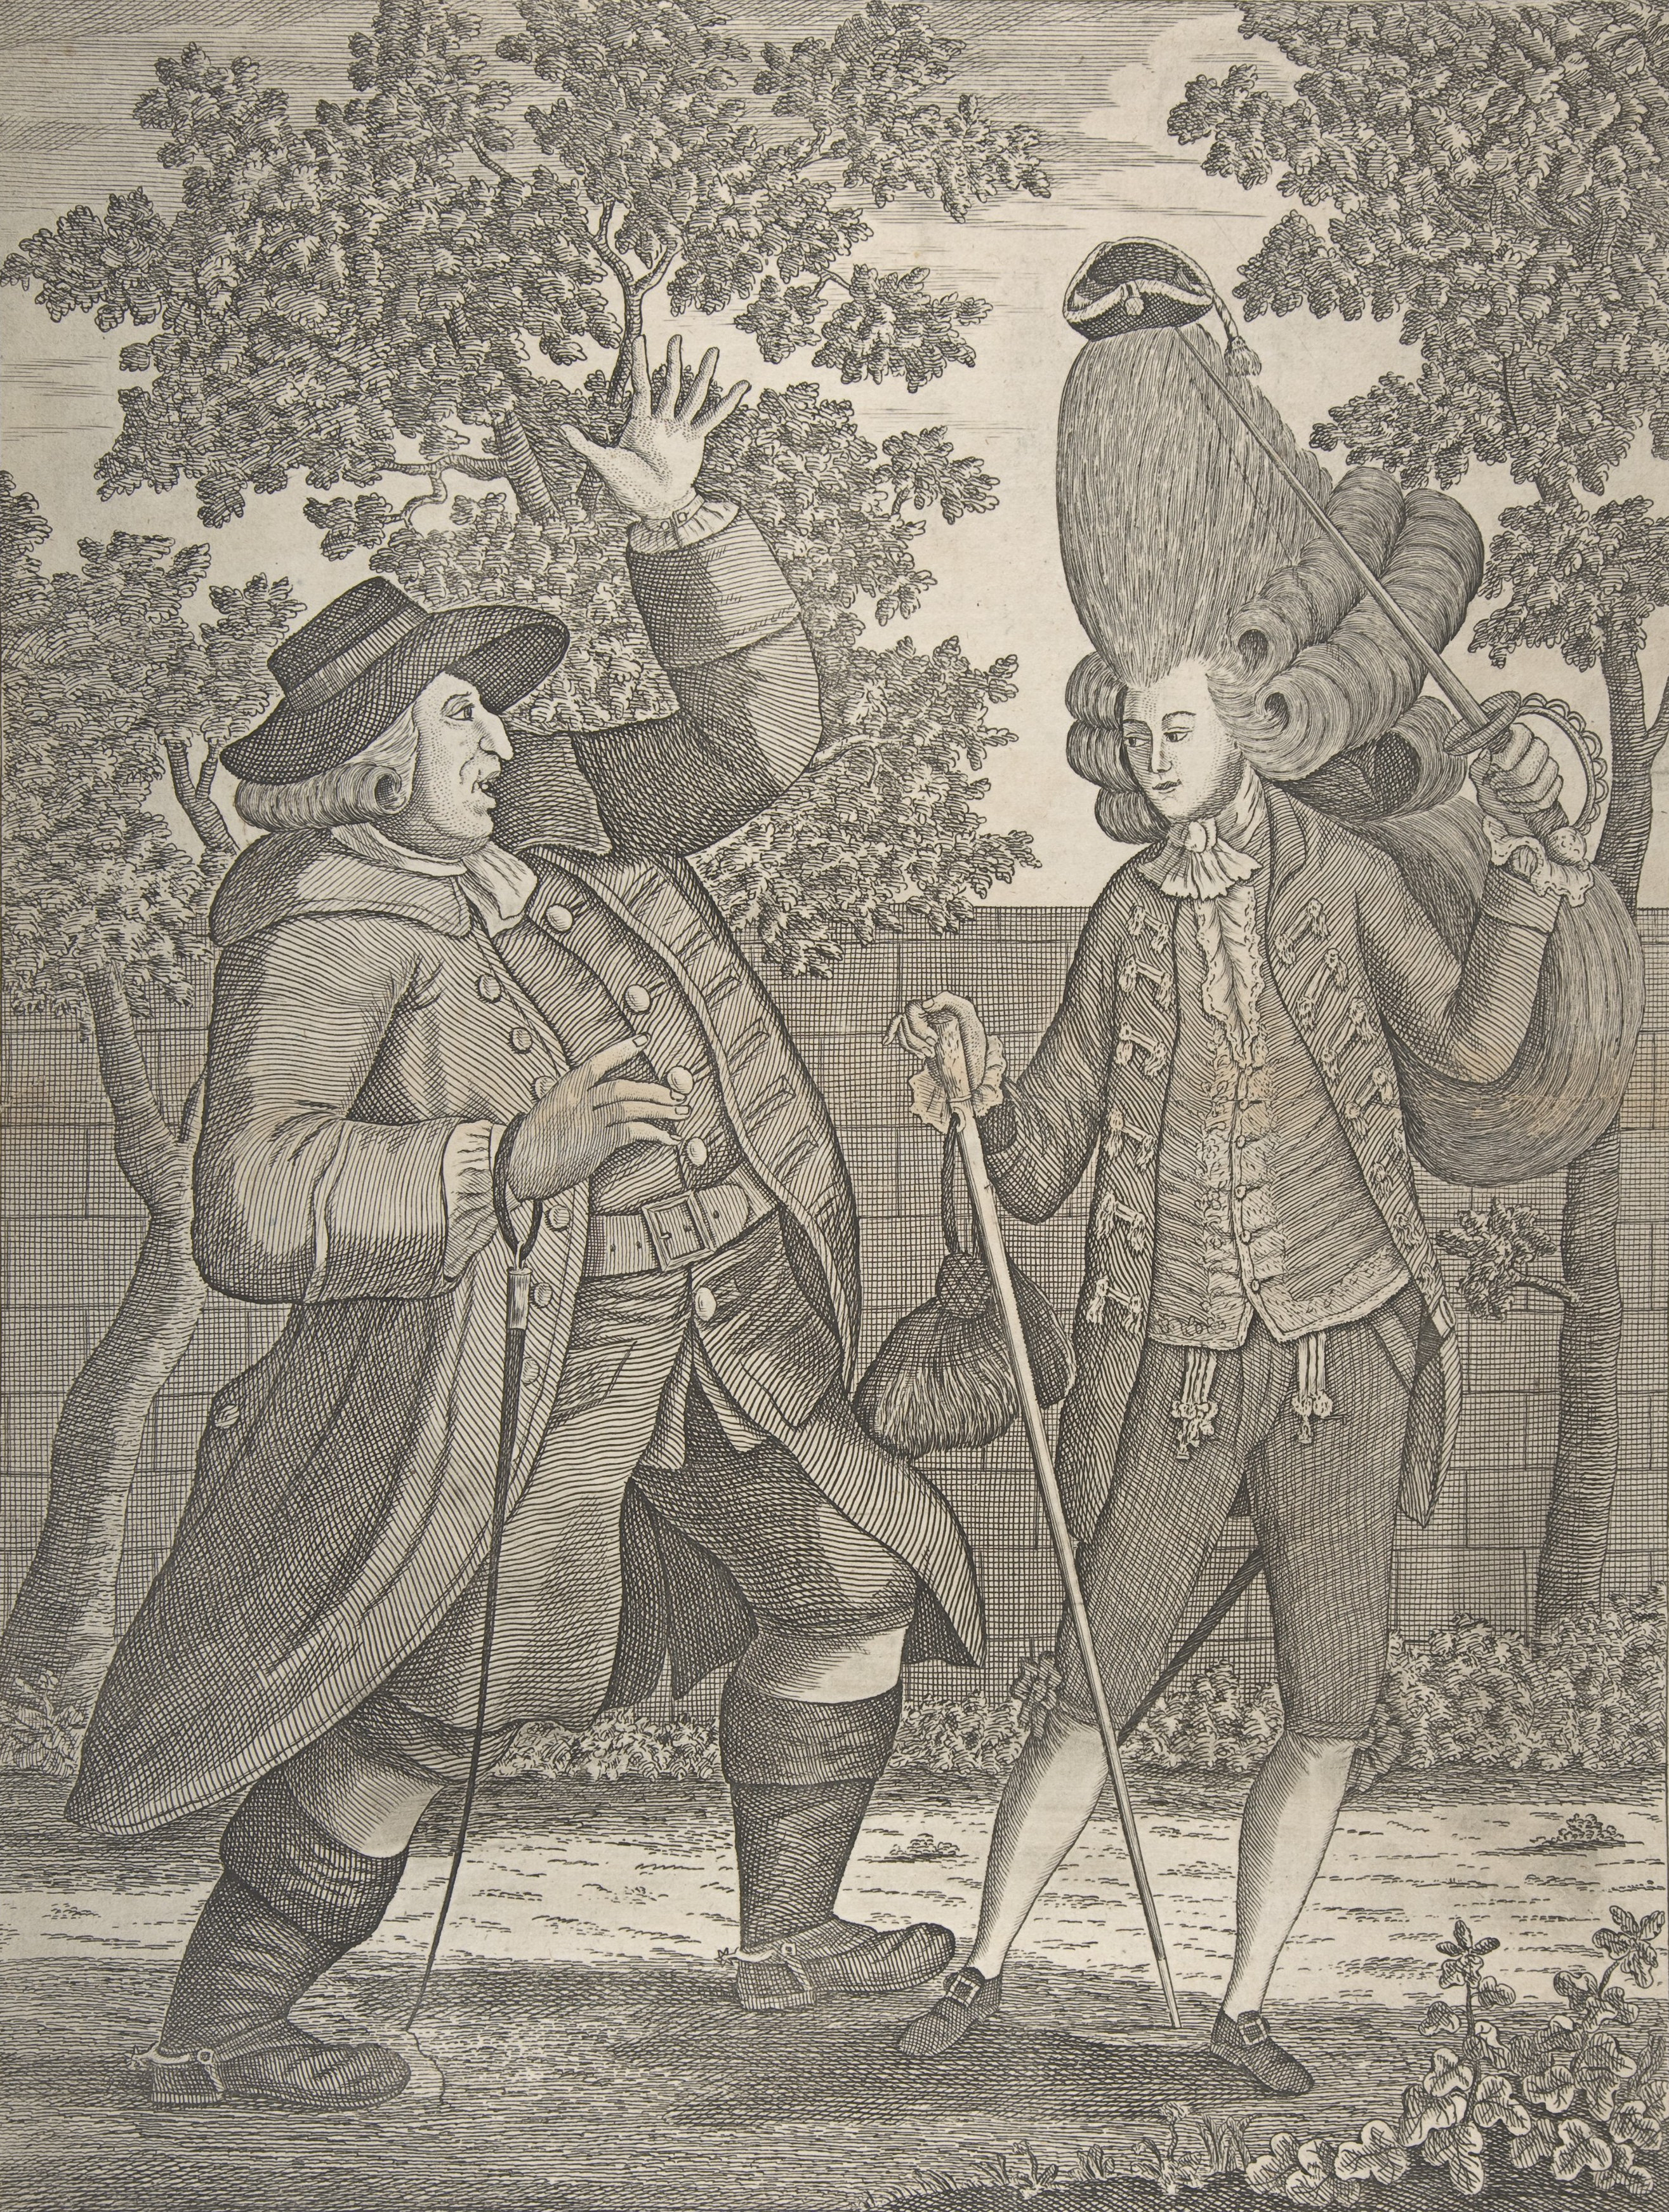 Photo of two men in Victorian wares, one with a high-standing hairstyle